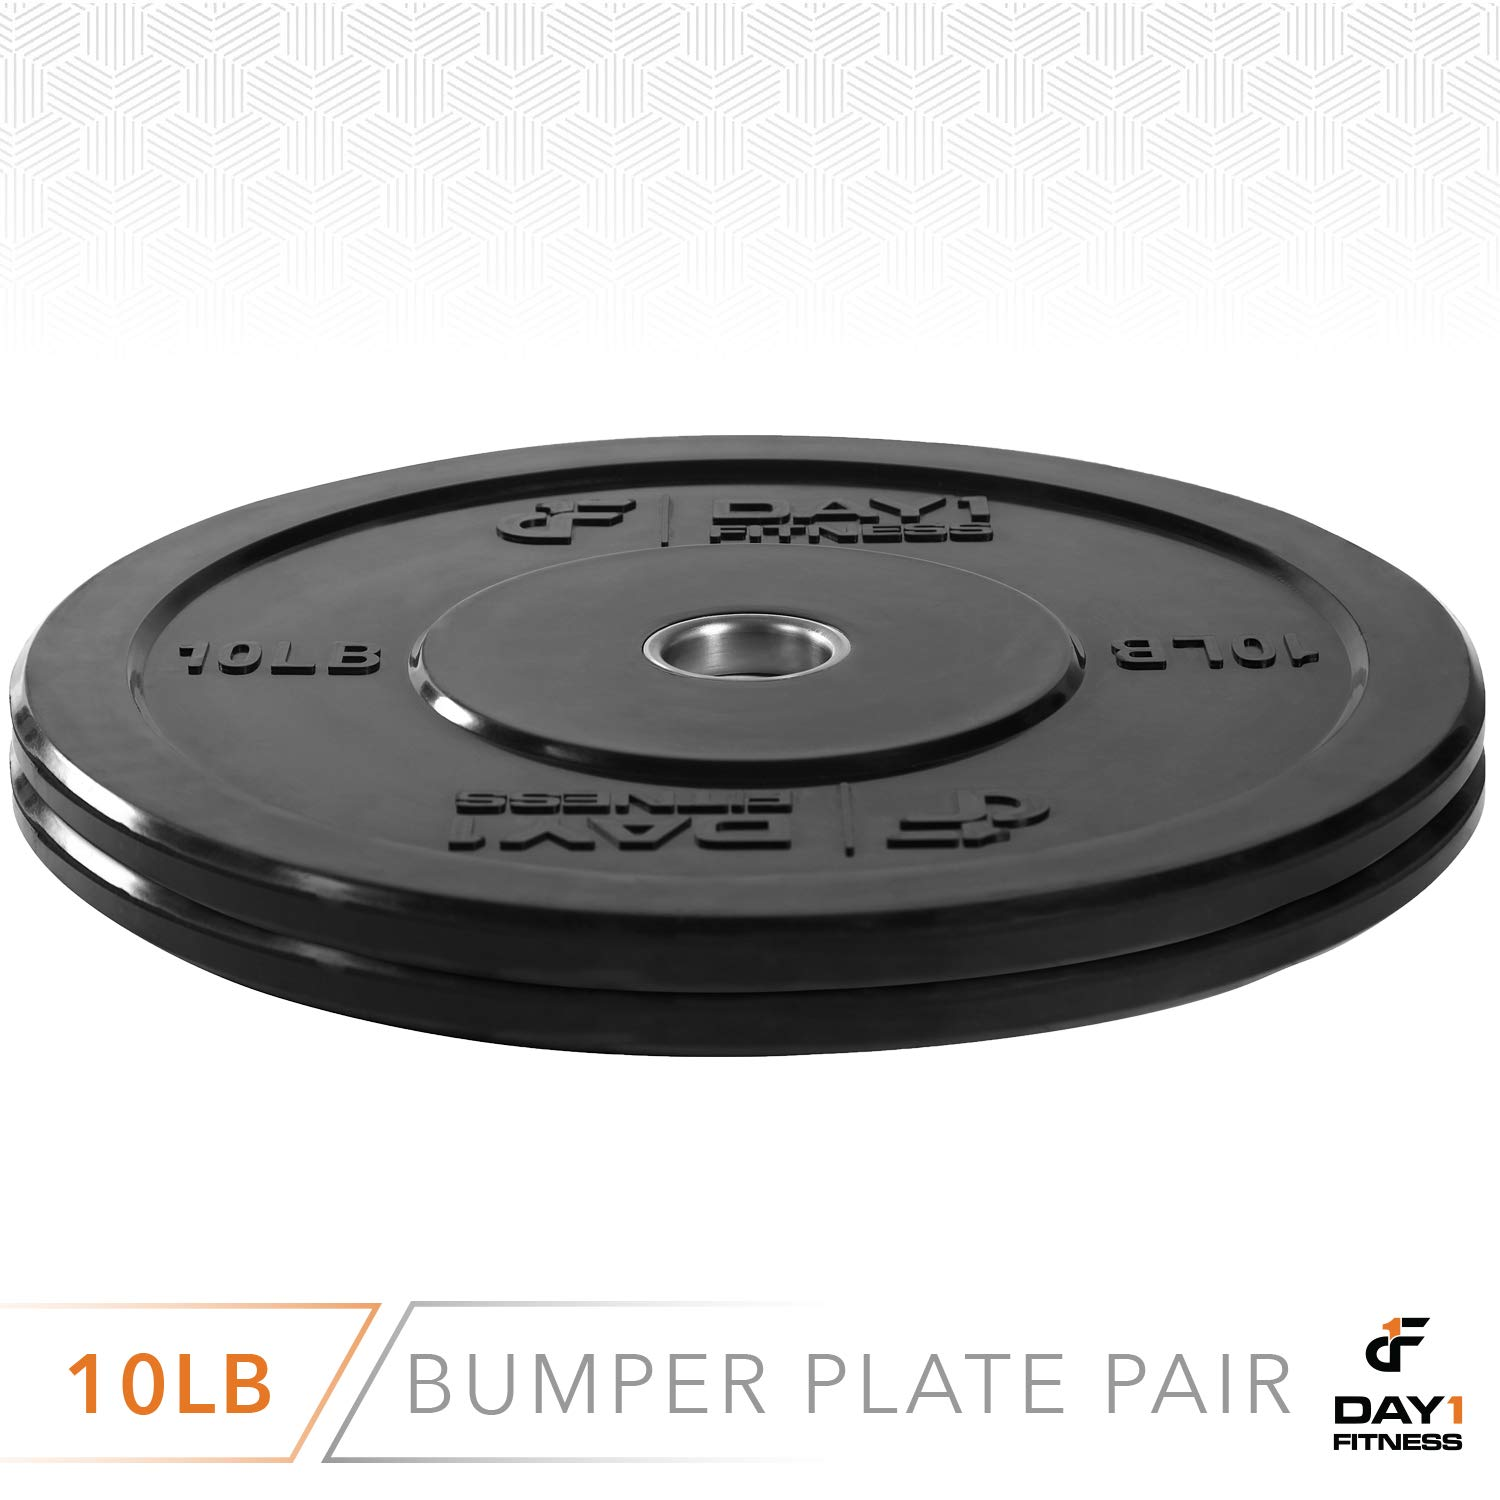 """Day 1 Fitness Olympic Bumper Weighted Plate 2"""" for Barbells, Bars – 10 lb Set of 2 Plates - Shock-Absorbing, Minimal Bounce Steel Weights with Bumpers for Lifting, Strength Training, and Working Out by Day 1 Fitness (Image #3)"""